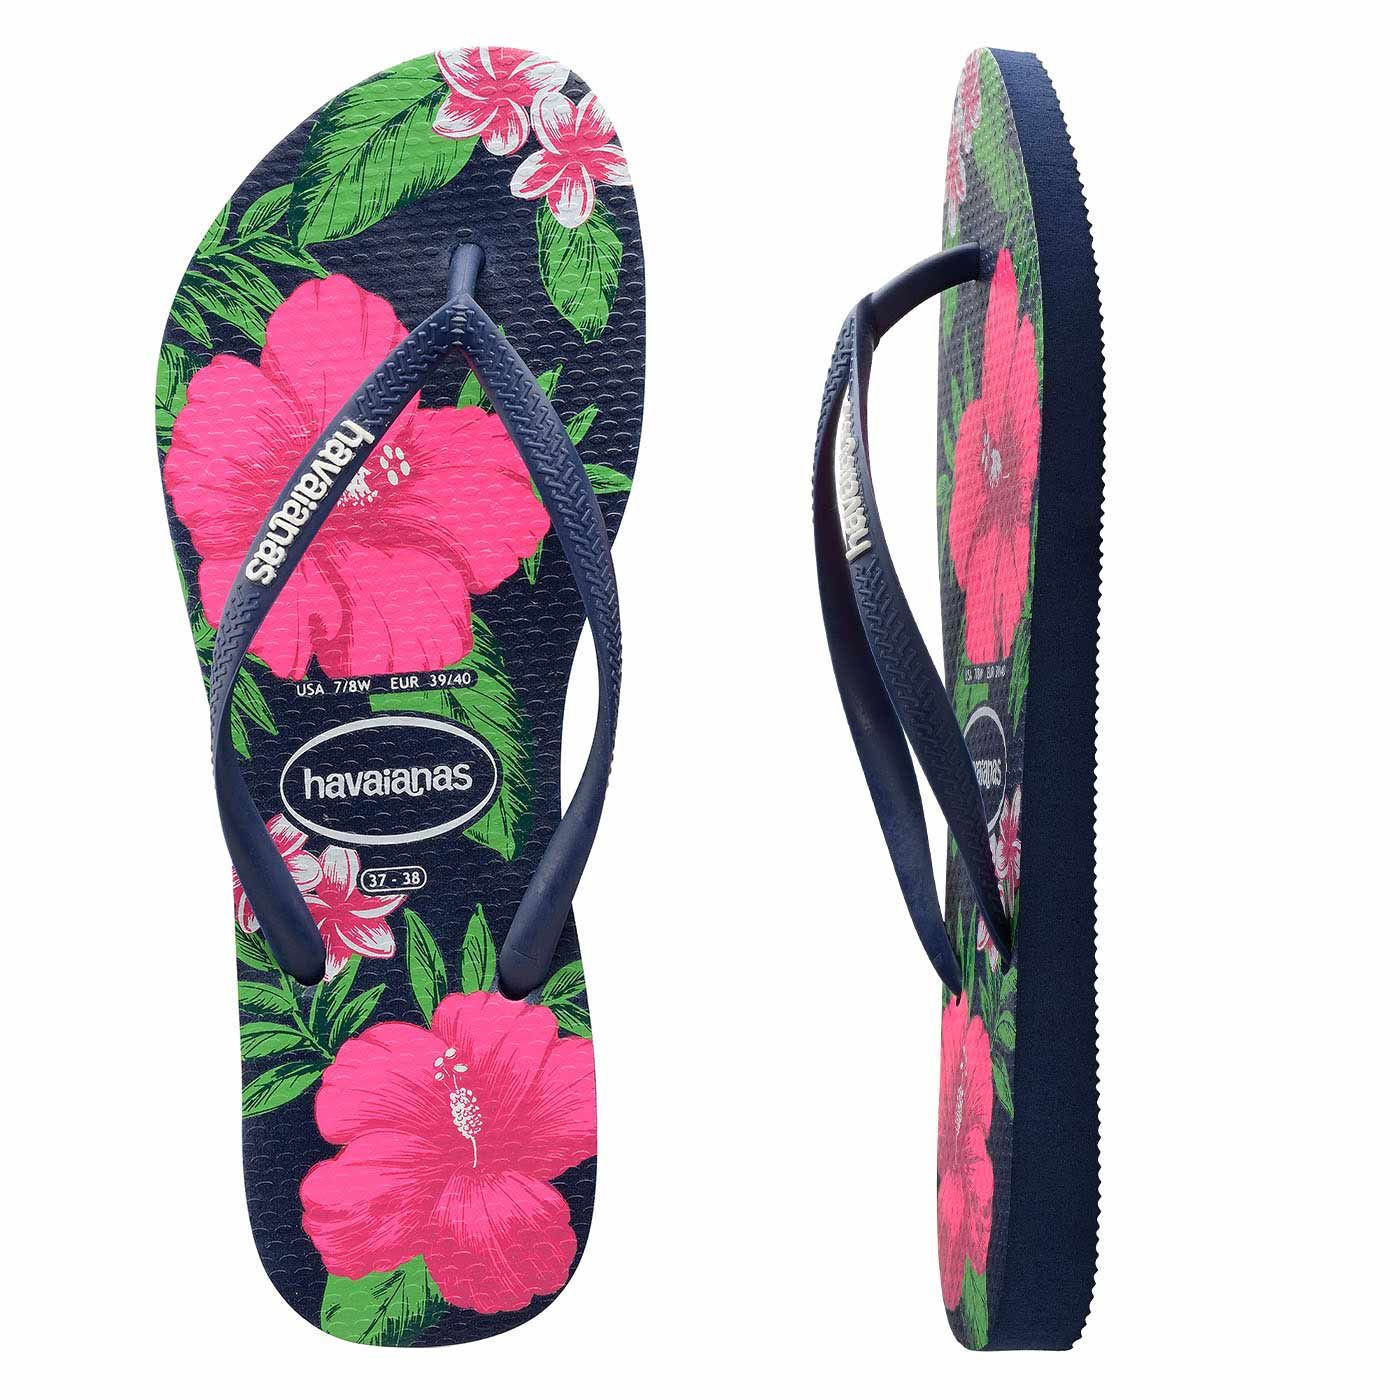 Havaianas Slim Floral Navy. Slim Navy Havaianas adorned with a bold summer  hibiscus and frangipani print in bright pink, slim navy straps finished  with a ...